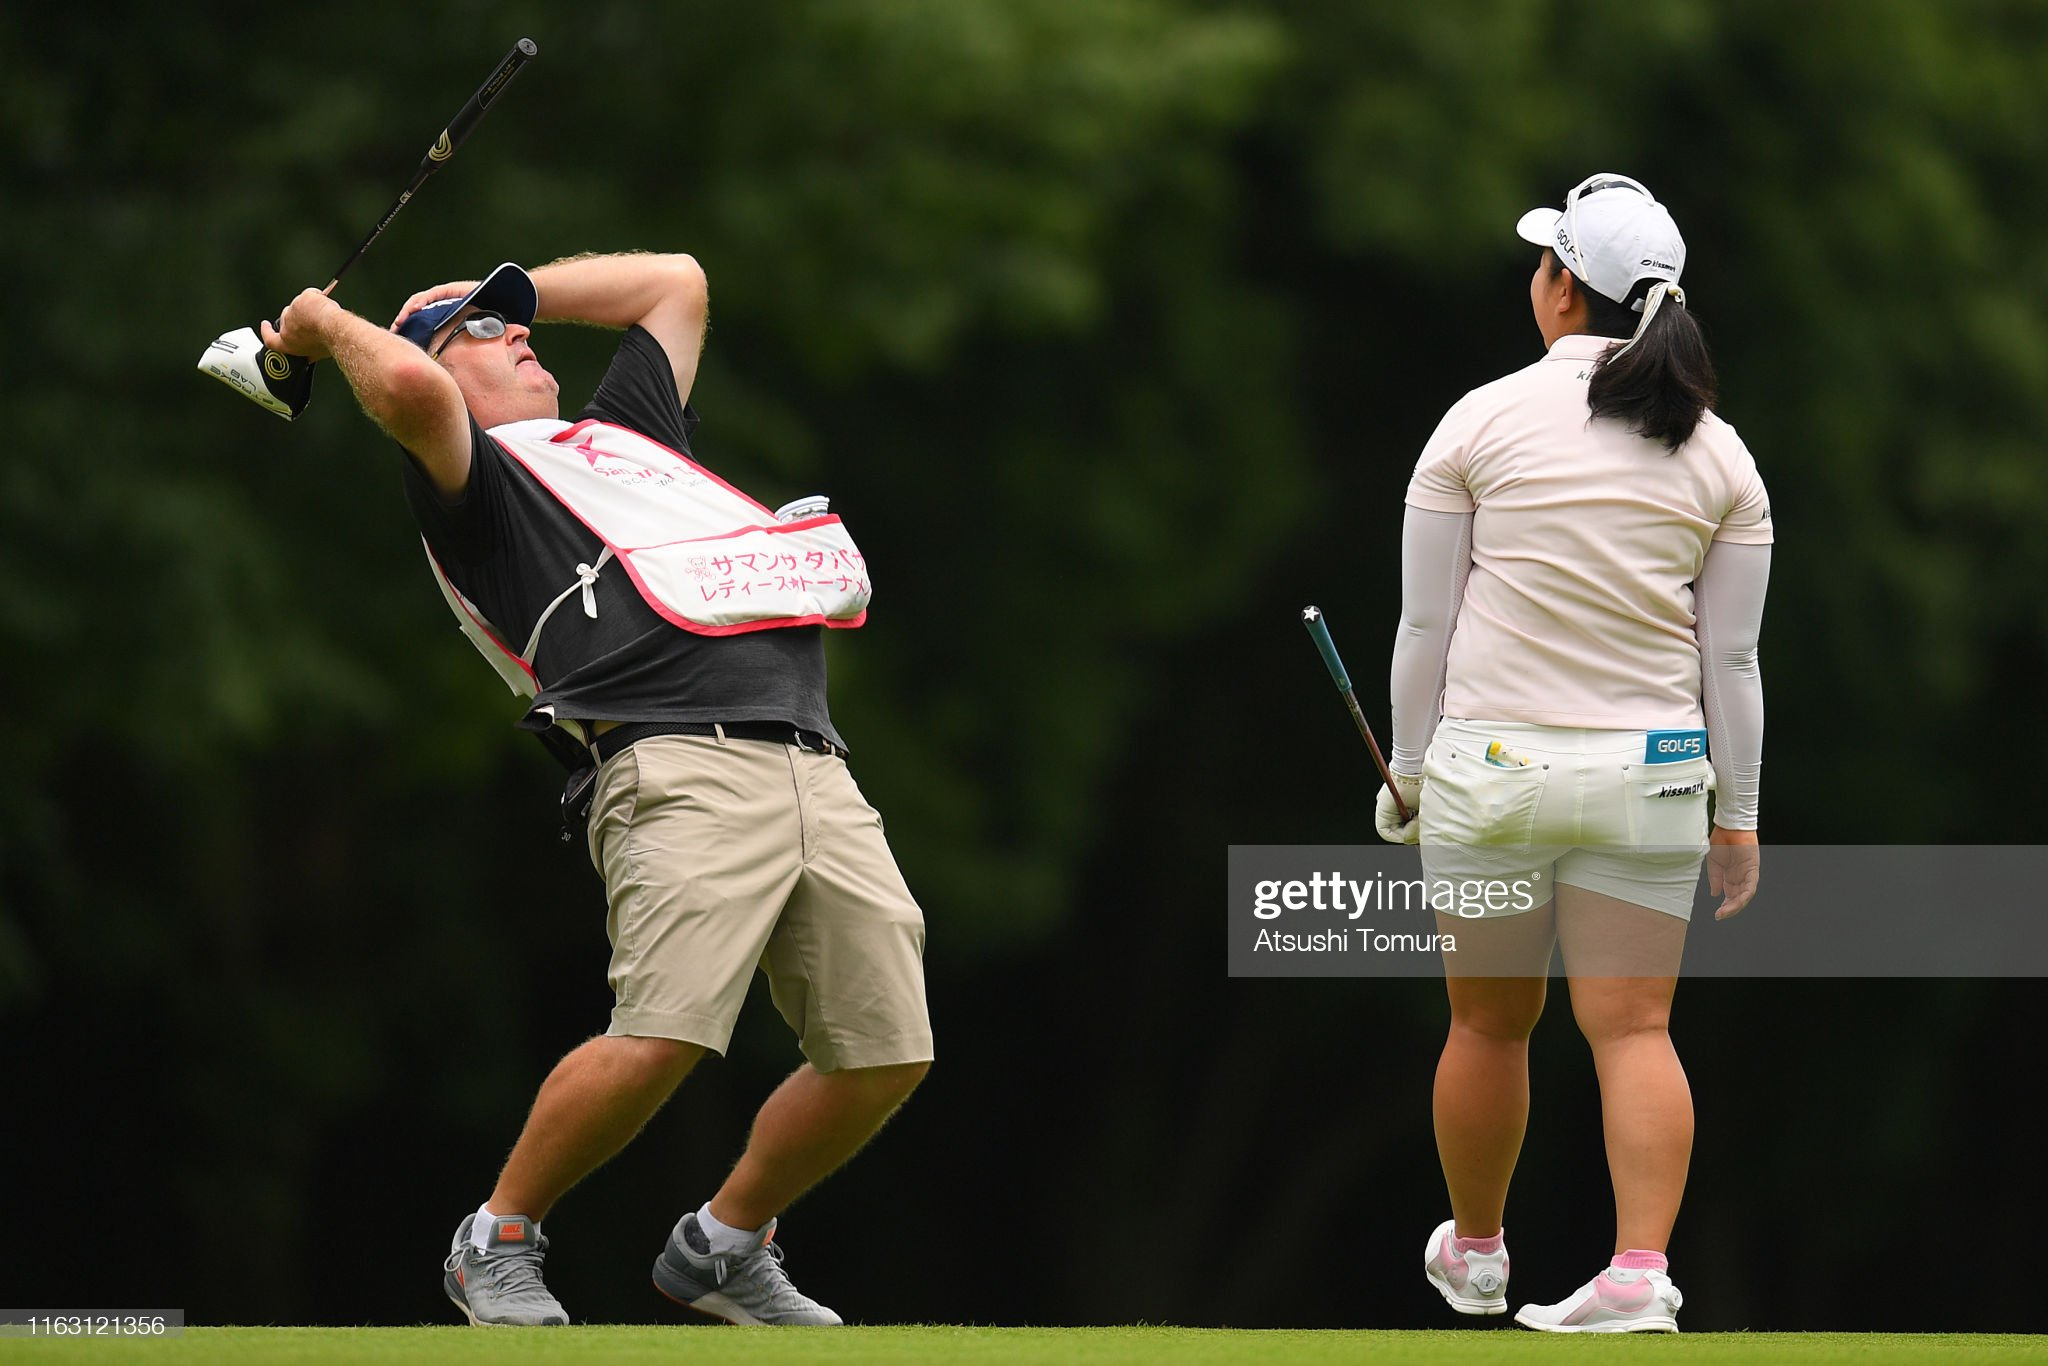 https://media.gettyimages.com/photos/saki-takeo-of-japan-and-her-caddie-react-after-her-second-shot-on-the-picture-id1163121356?s=2048x2048